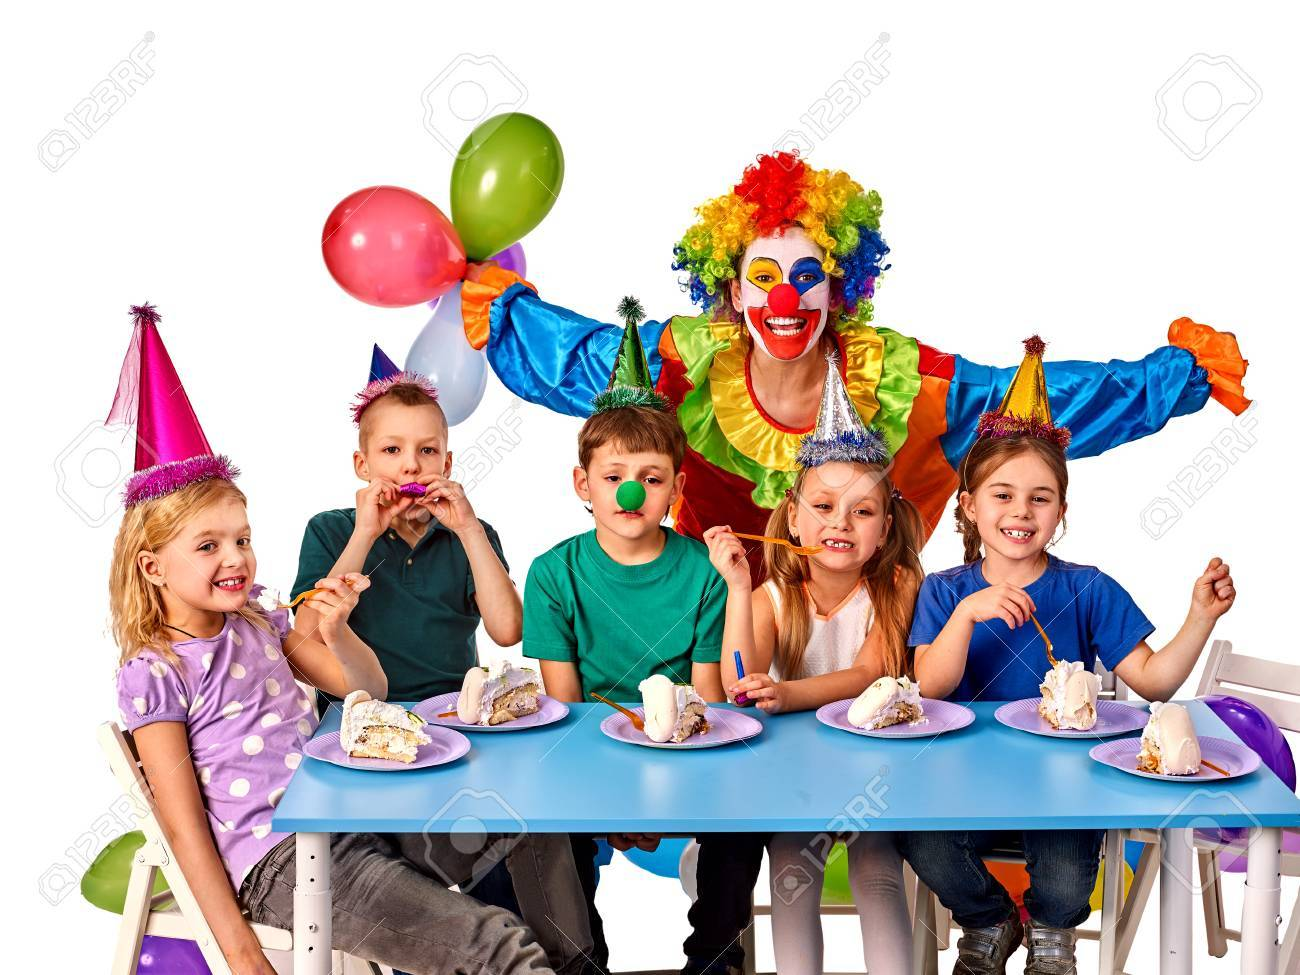 Birthday Child Clown Playing With Children Who Eat Cake Kid Nose Bunny Fingers Prank